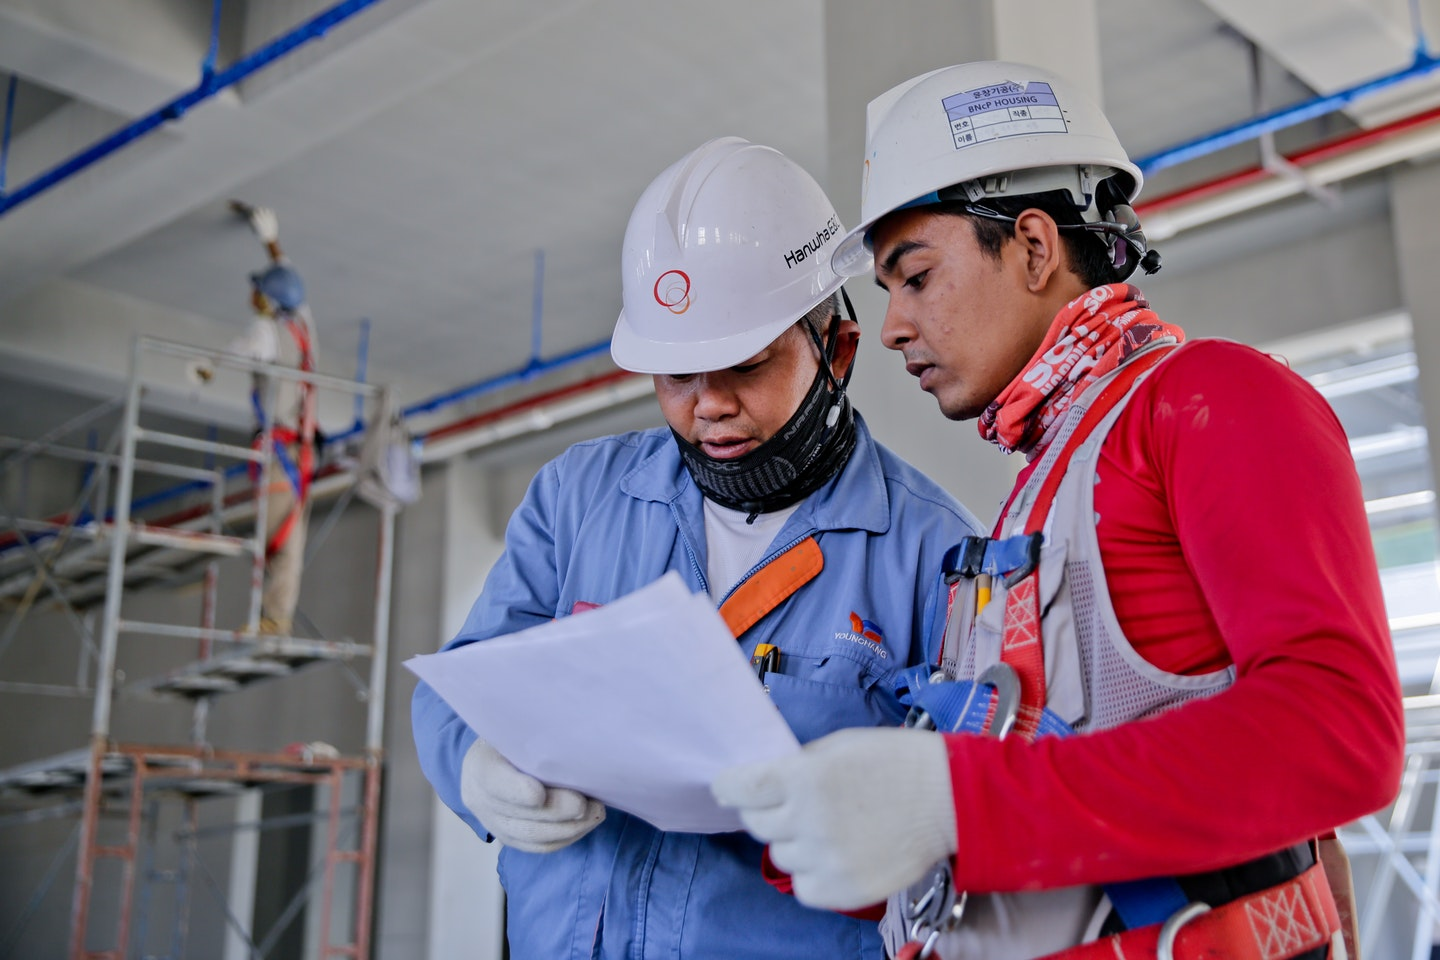 Two workers are reviewing a document while wearing safety gear